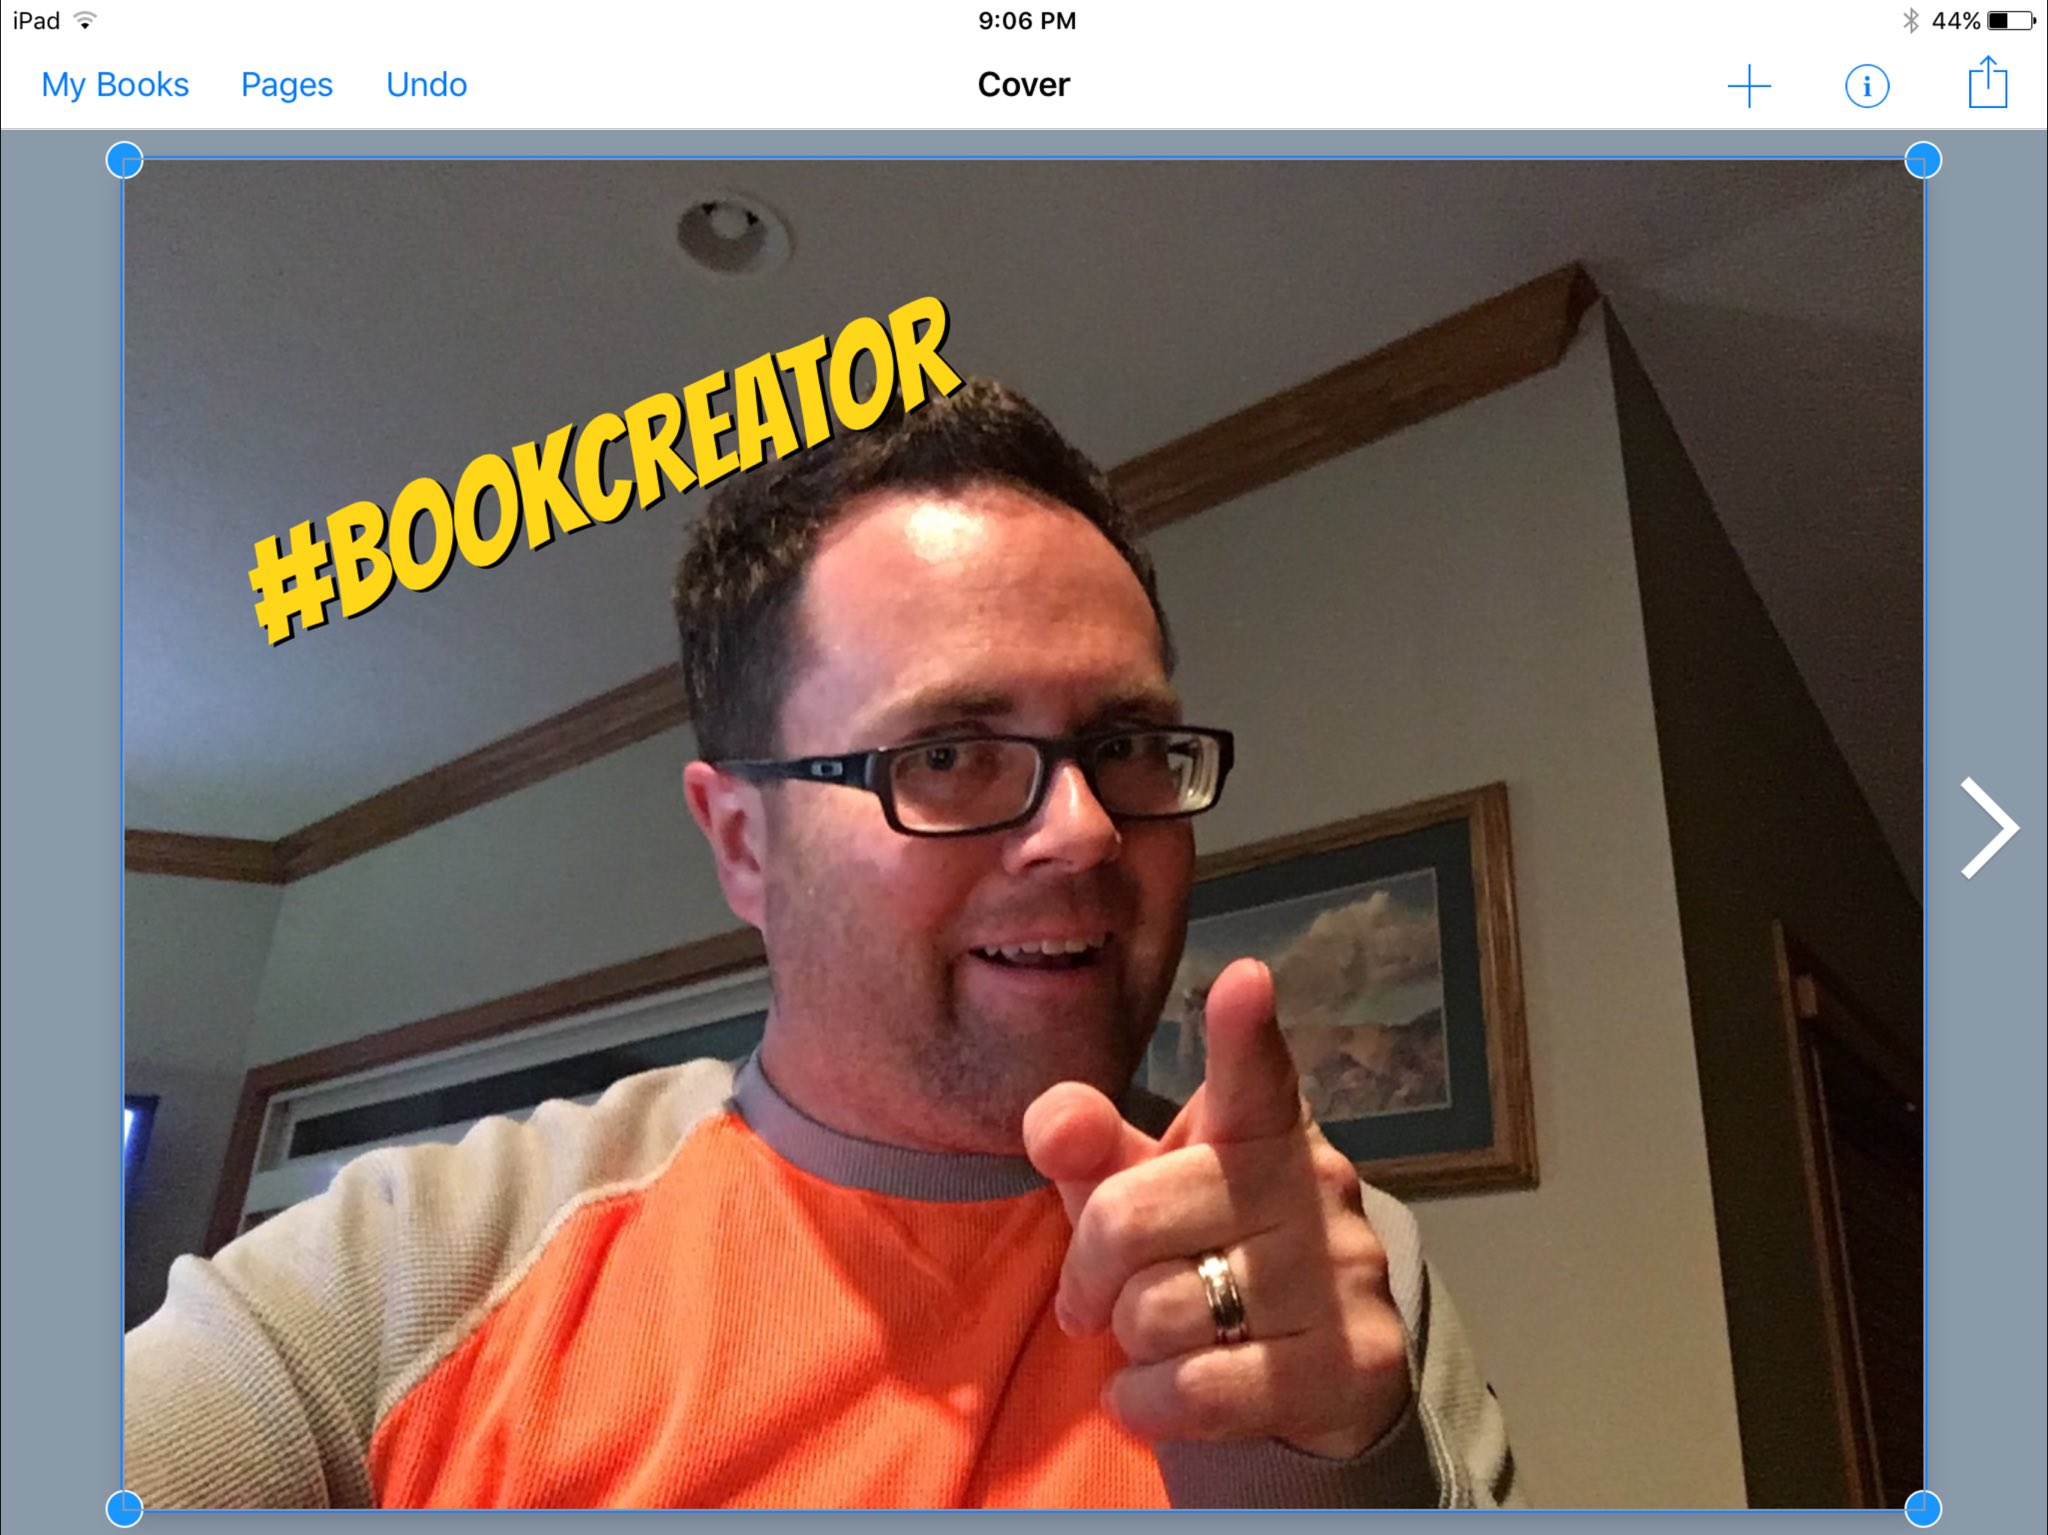 Thumbnail for #BookCreator chat: Best Practice (13 Oct 2016) - US